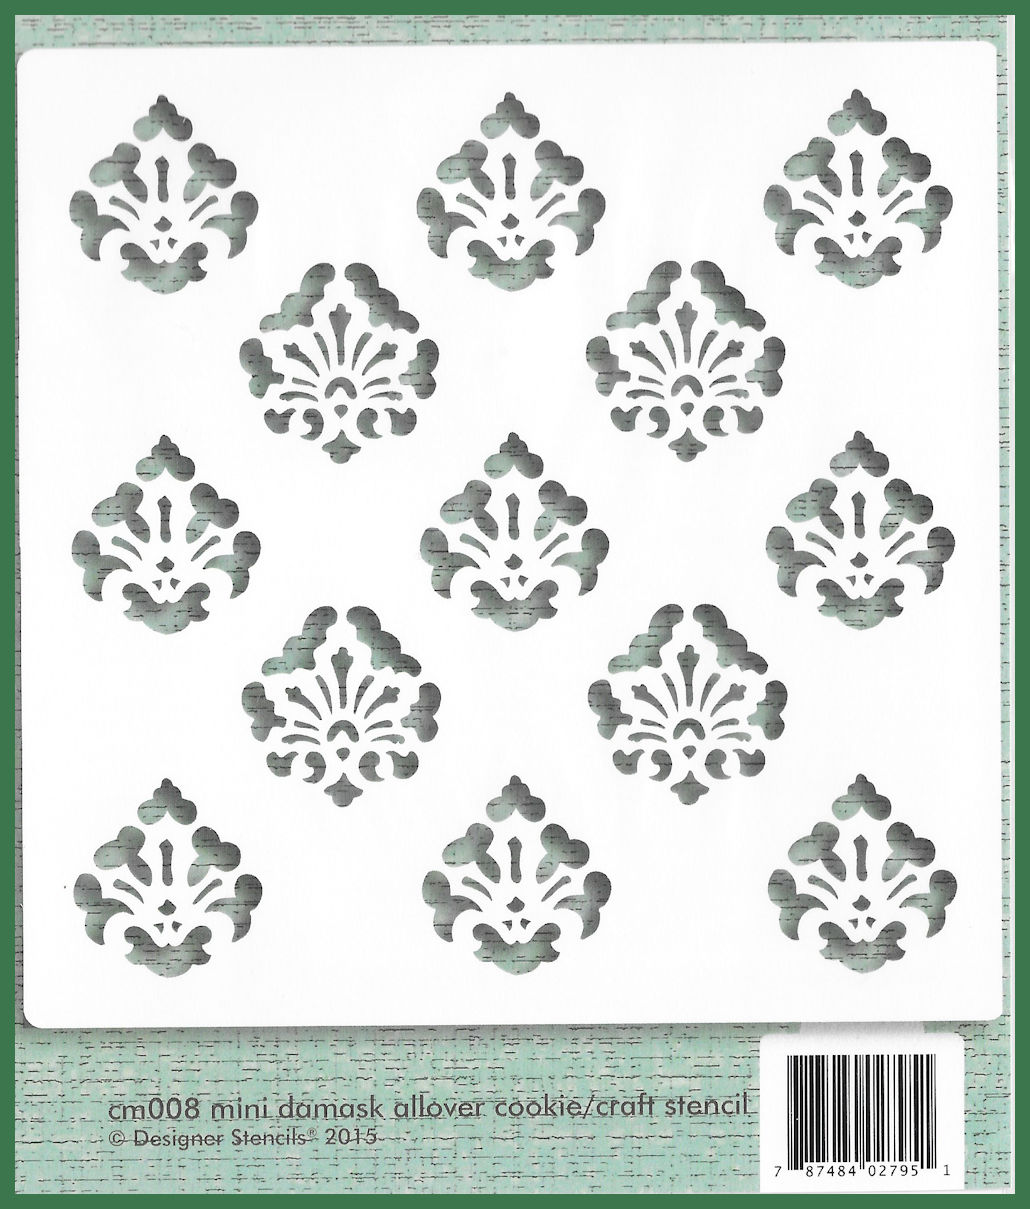 ds-mini-damask-8748402795.jpg